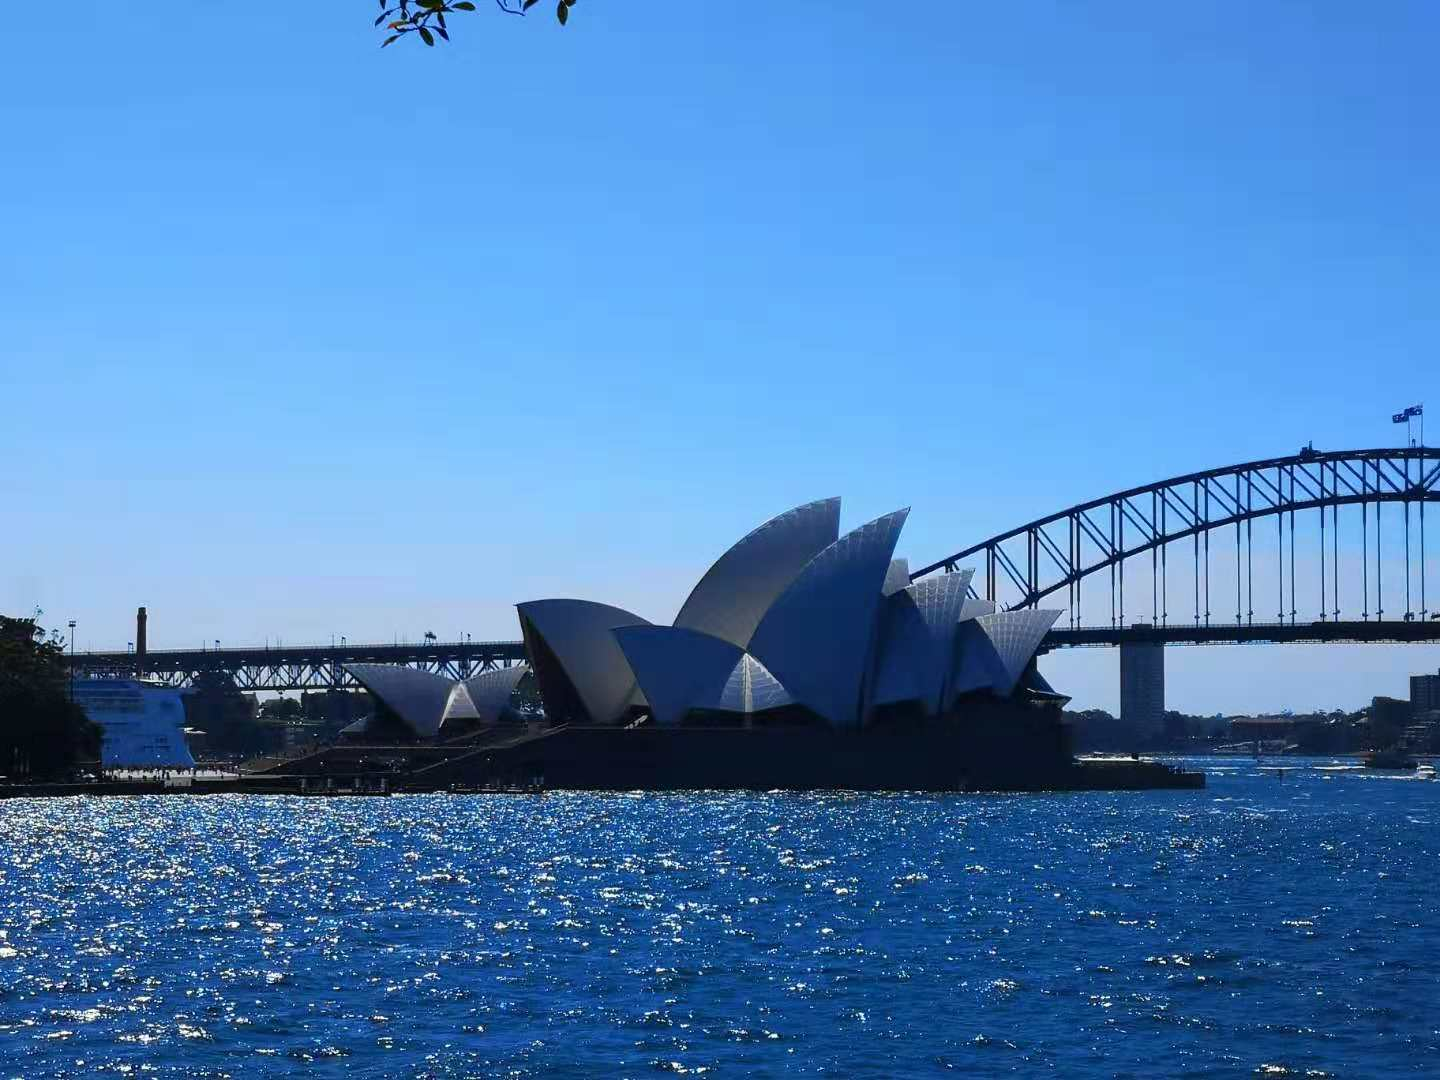 道家阴符派博客--Australia Tour (1):The Feng Shui and Taoist Philosophy of the Sydney Opera House--风水 2